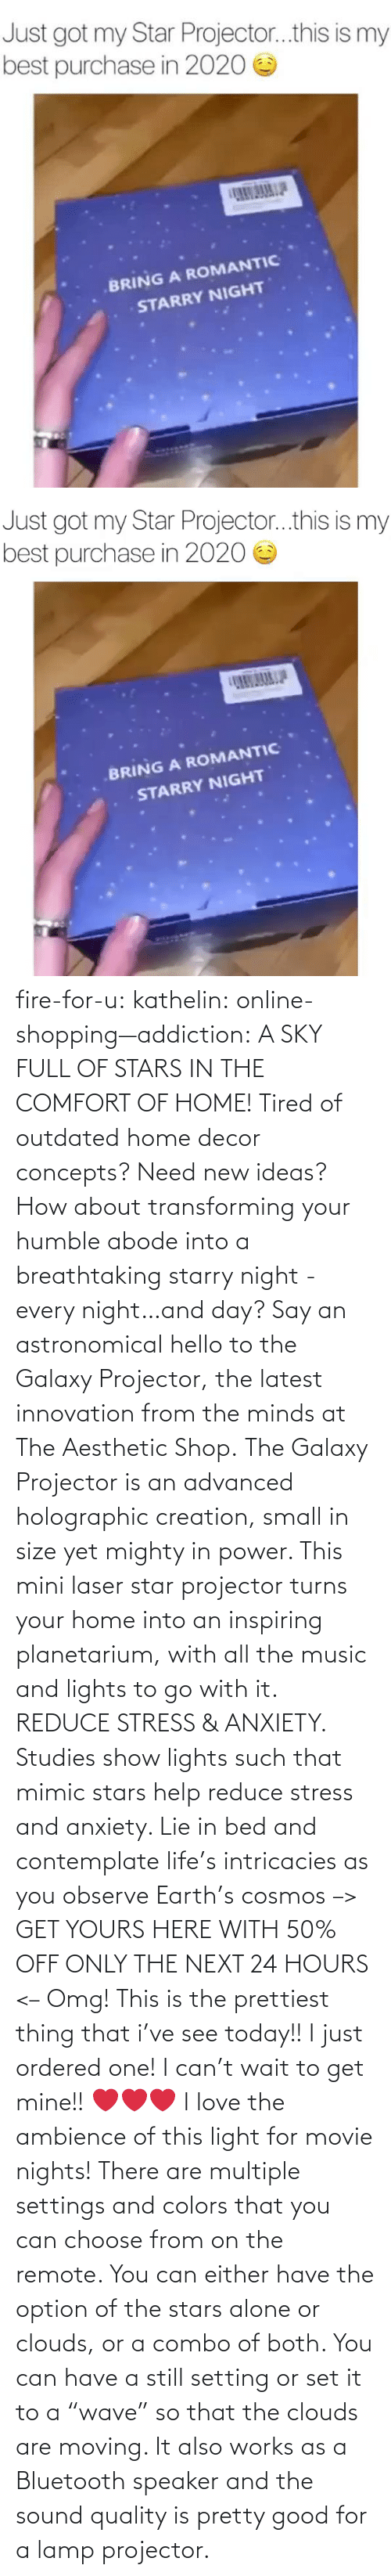 "Love: fire-for-u:  kathelin: online-shopping—addiction:  A SKY FULL OF STARS IN THE COMFORT OF HOME! Tired of outdated home decor concepts? Need new ideas? How about transforming your humble abode into a breathtaking starry night - every night…and day? Say an astronomical hello to the Galaxy Projector, the latest innovation from the minds at The Aesthetic Shop. The Galaxy Projector is an advanced holographic creation, small in size yet mighty in power. This mini laser star projector turns your home into an inspiring planetarium, with all the music and lights to go with it. REDUCE STRESS & ANXIETY. Studies show lights such that mimic stars help reduce stress and anxiety. Lie in bed and contemplate life's intricacies as you observe Earth's cosmos  –> GET YOURS HERE WITH 50% OFF ONLY THE NEXT 24 HOURS <–   Omg! This is the prettiest thing that i've see today!! I just ordered one! I can't wait to get mine!! ❤️️❤️️❤️️  I love the ambience of this light for movie nights! There are multiple settings and colors that you can choose from on the remote. You can either have the option of the stars alone or clouds, or a combo of both. You can have a still setting or set it to a ""wave"" so that the clouds are moving. It also works as a Bluetooth speaker and the sound quality is pretty good for a lamp projector."